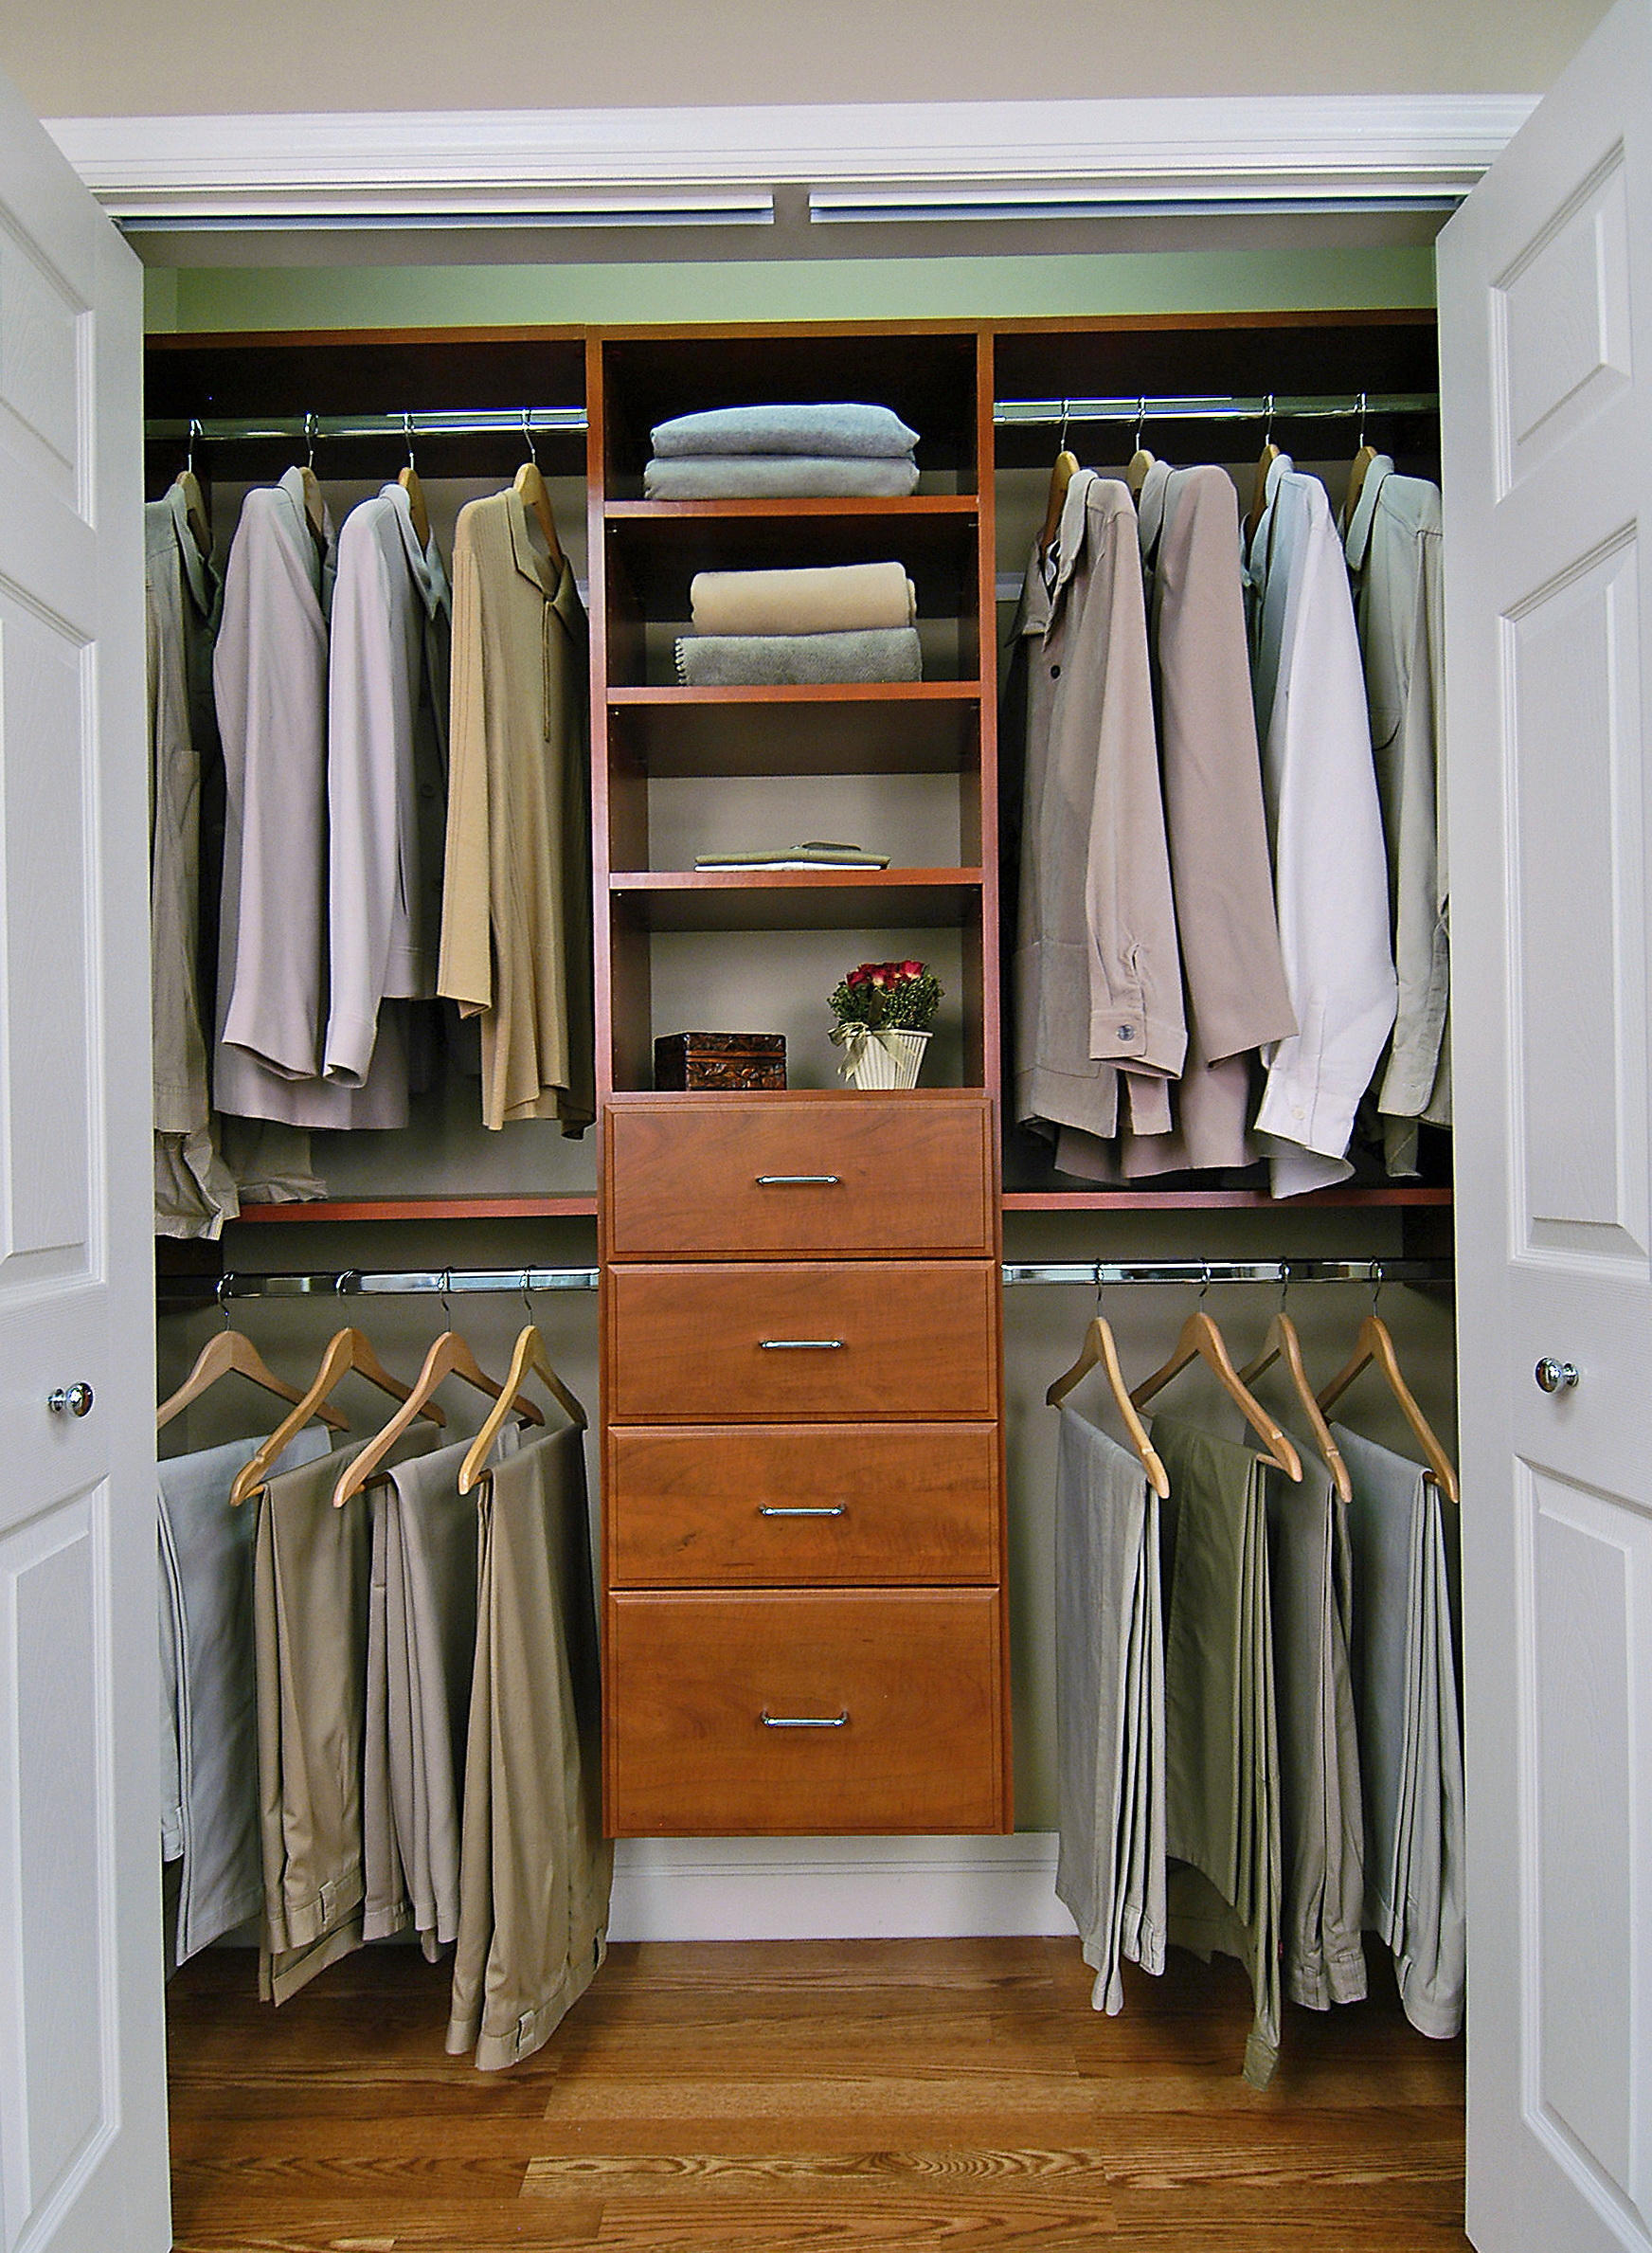 Closet design tool ipad home design ideas for Closet layout design tool